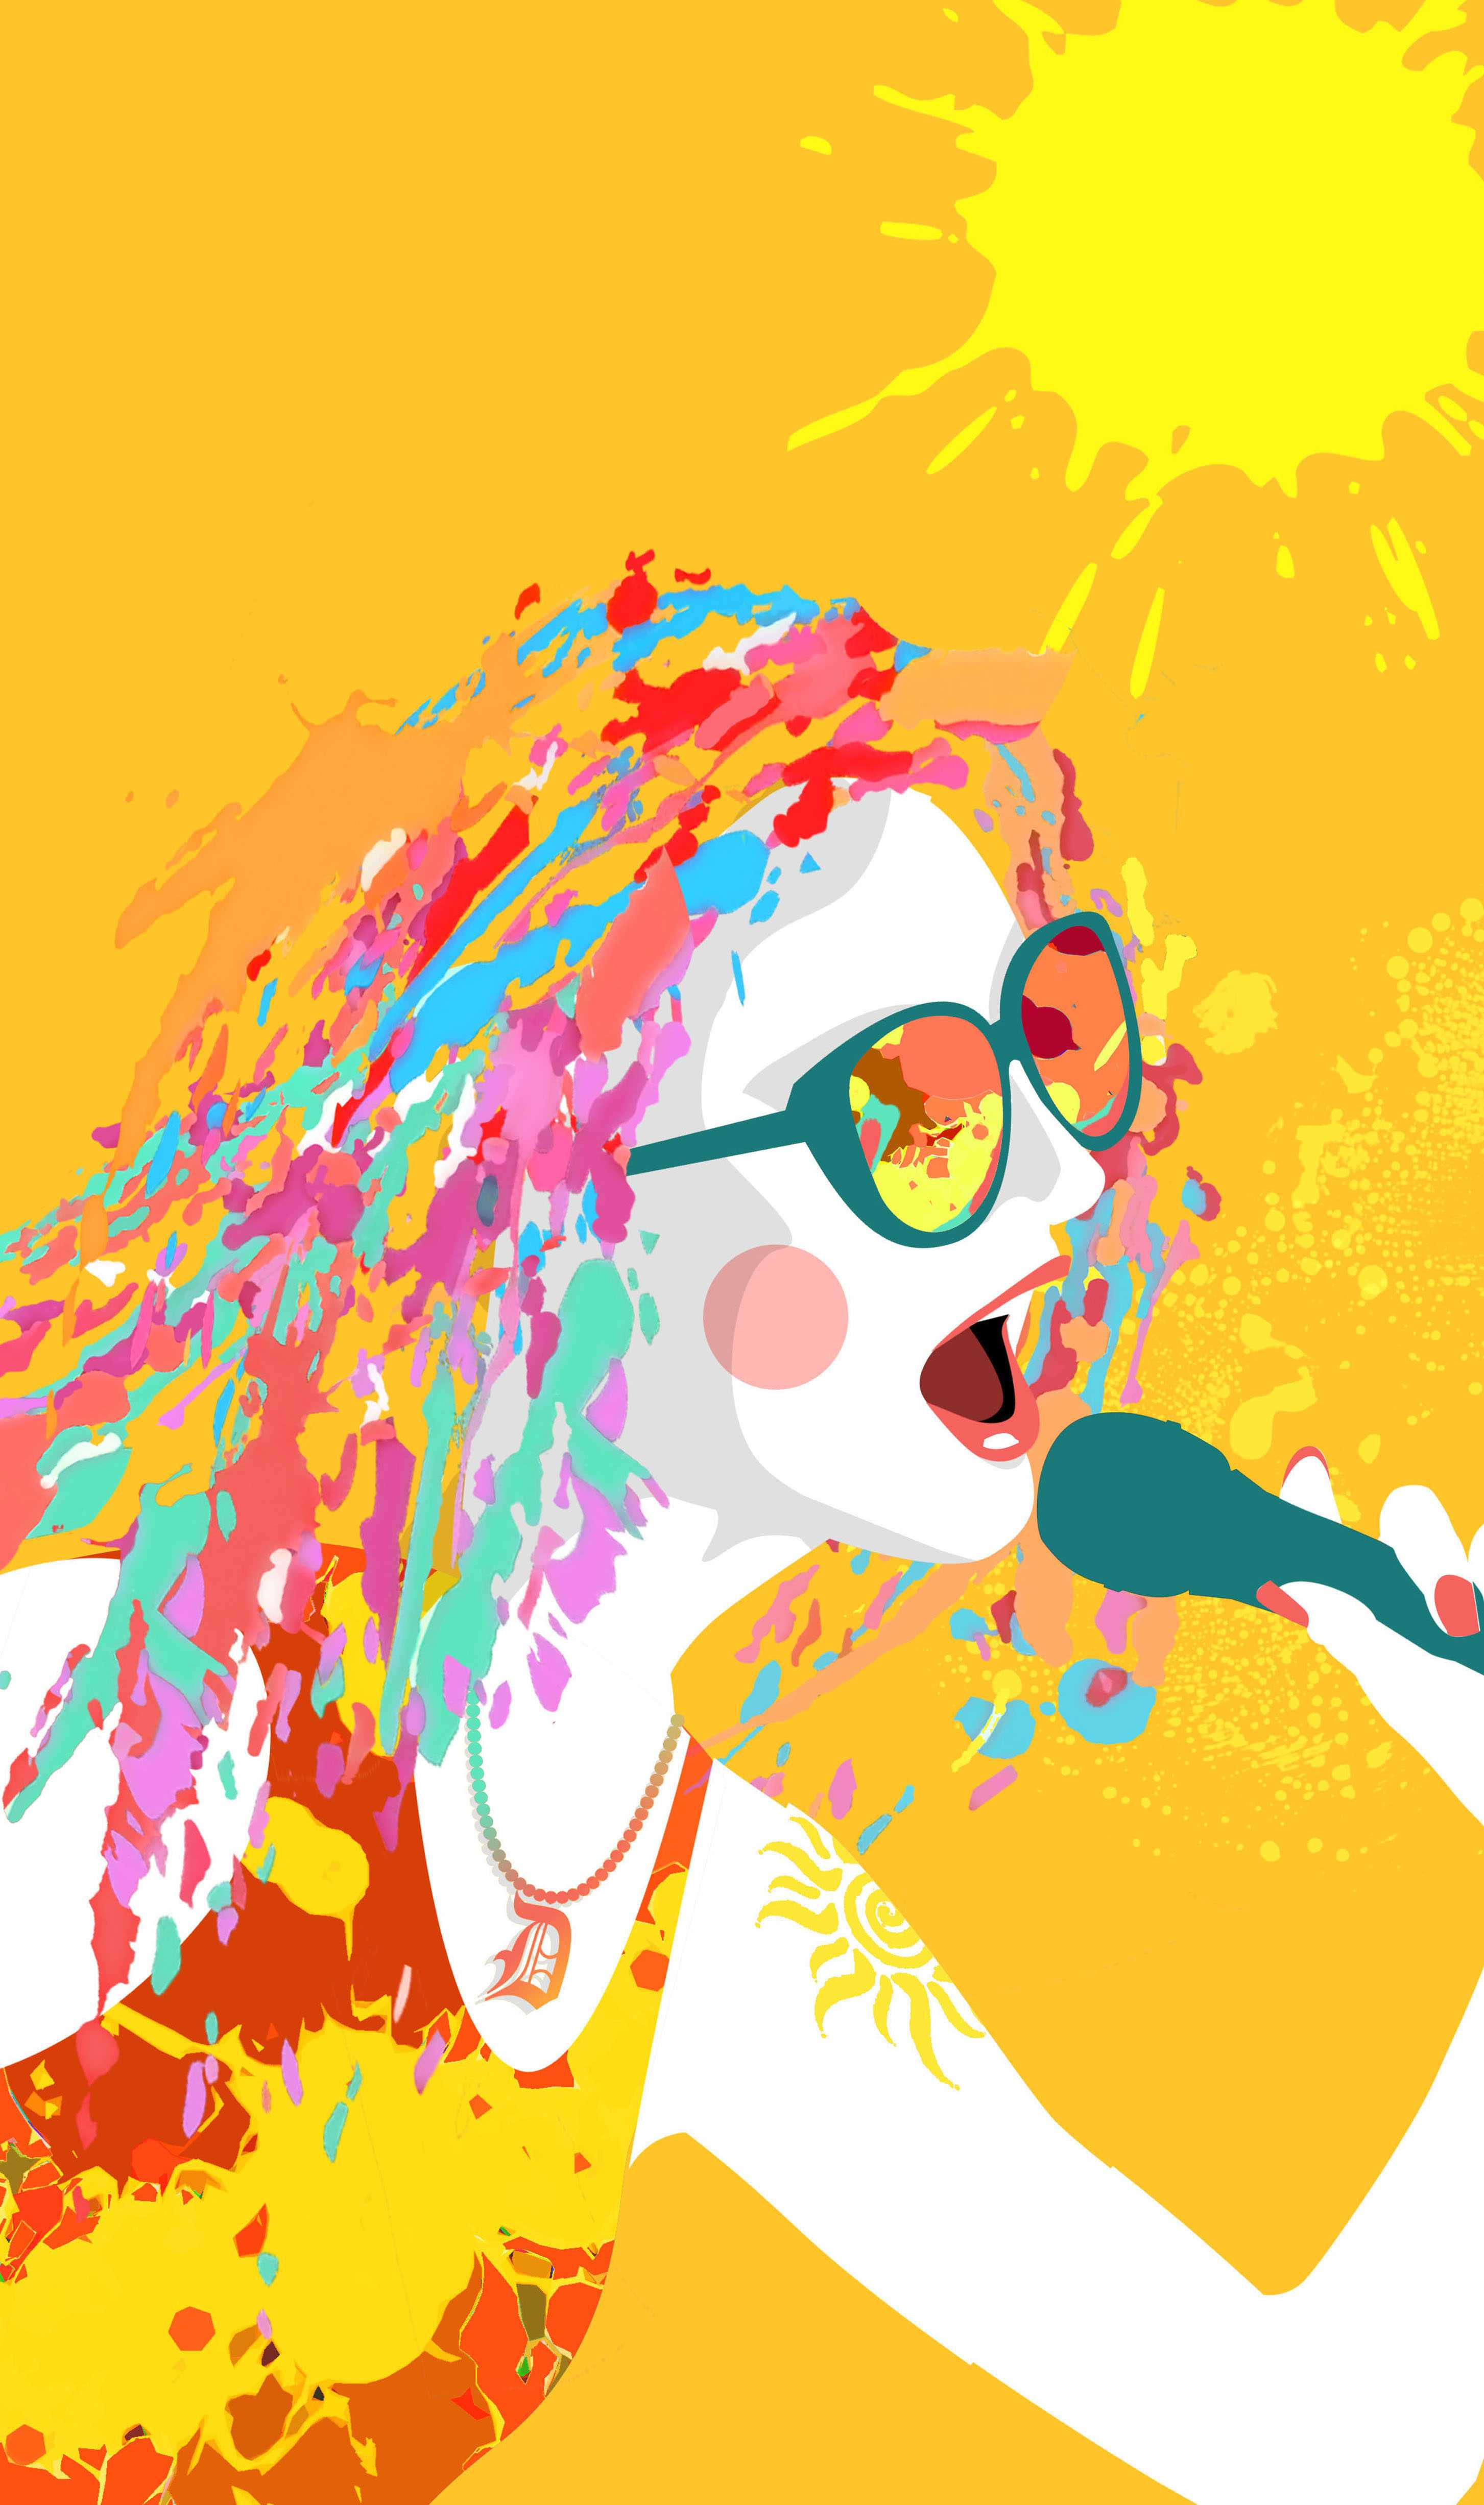 Rick Nease illustration of woman singing at a summer concert. Detroit Free Press 2011.